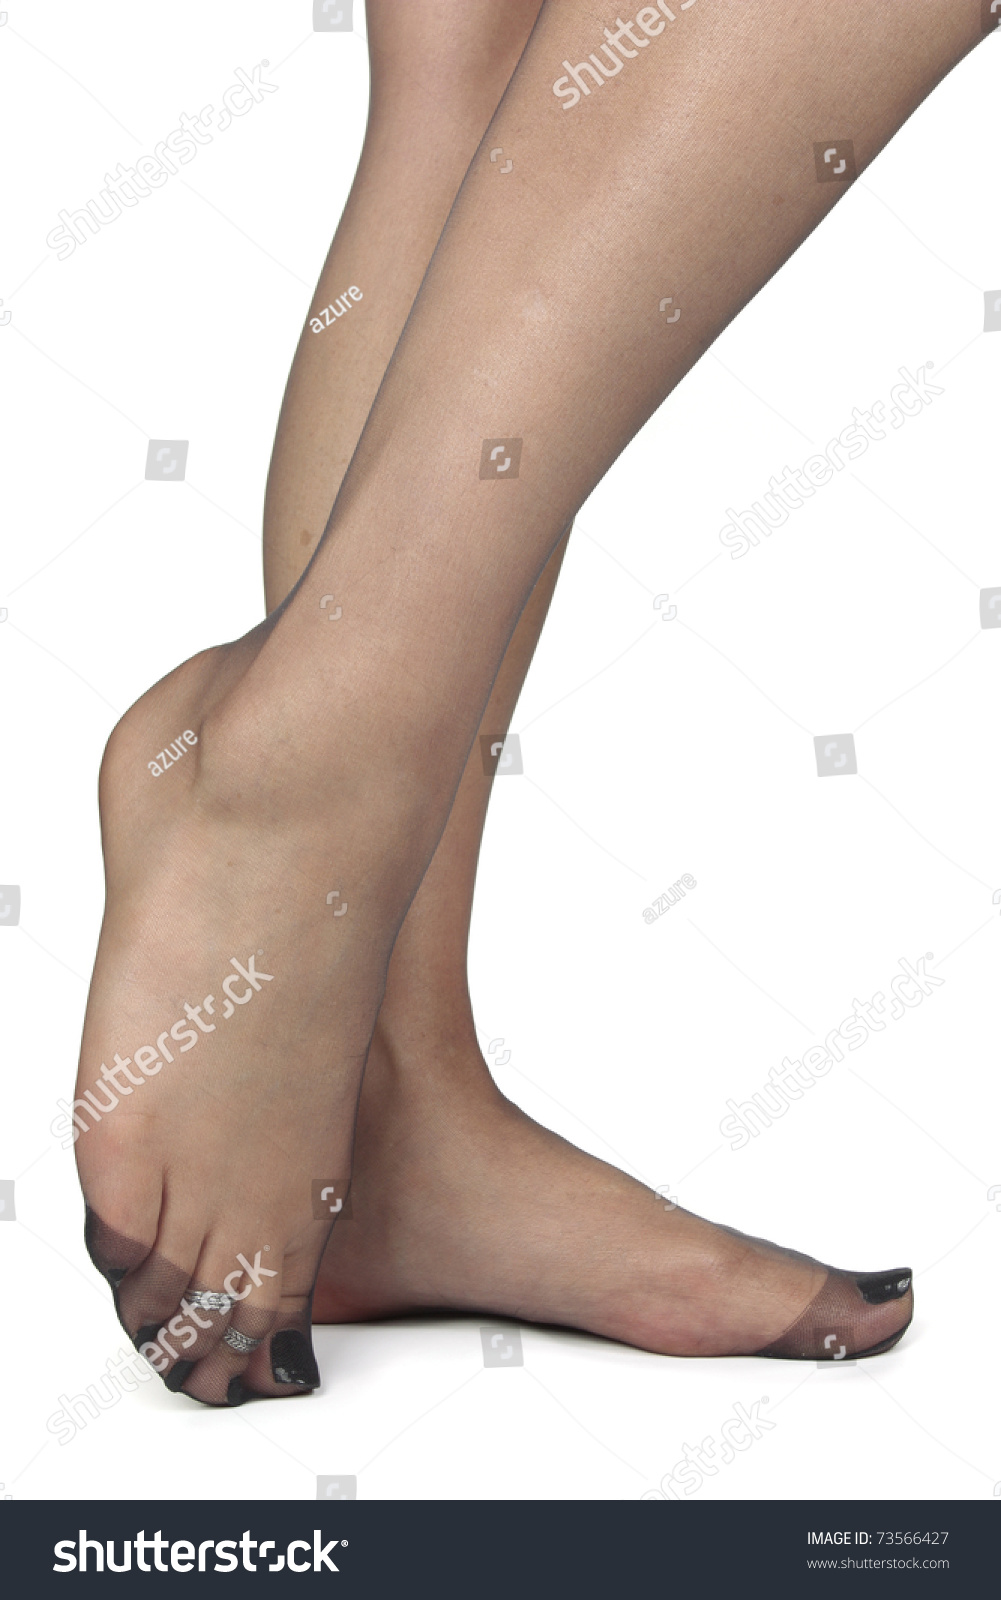 Woman Legs Feet Tights Stock Photo Edit Now 73566427 Shutterstock